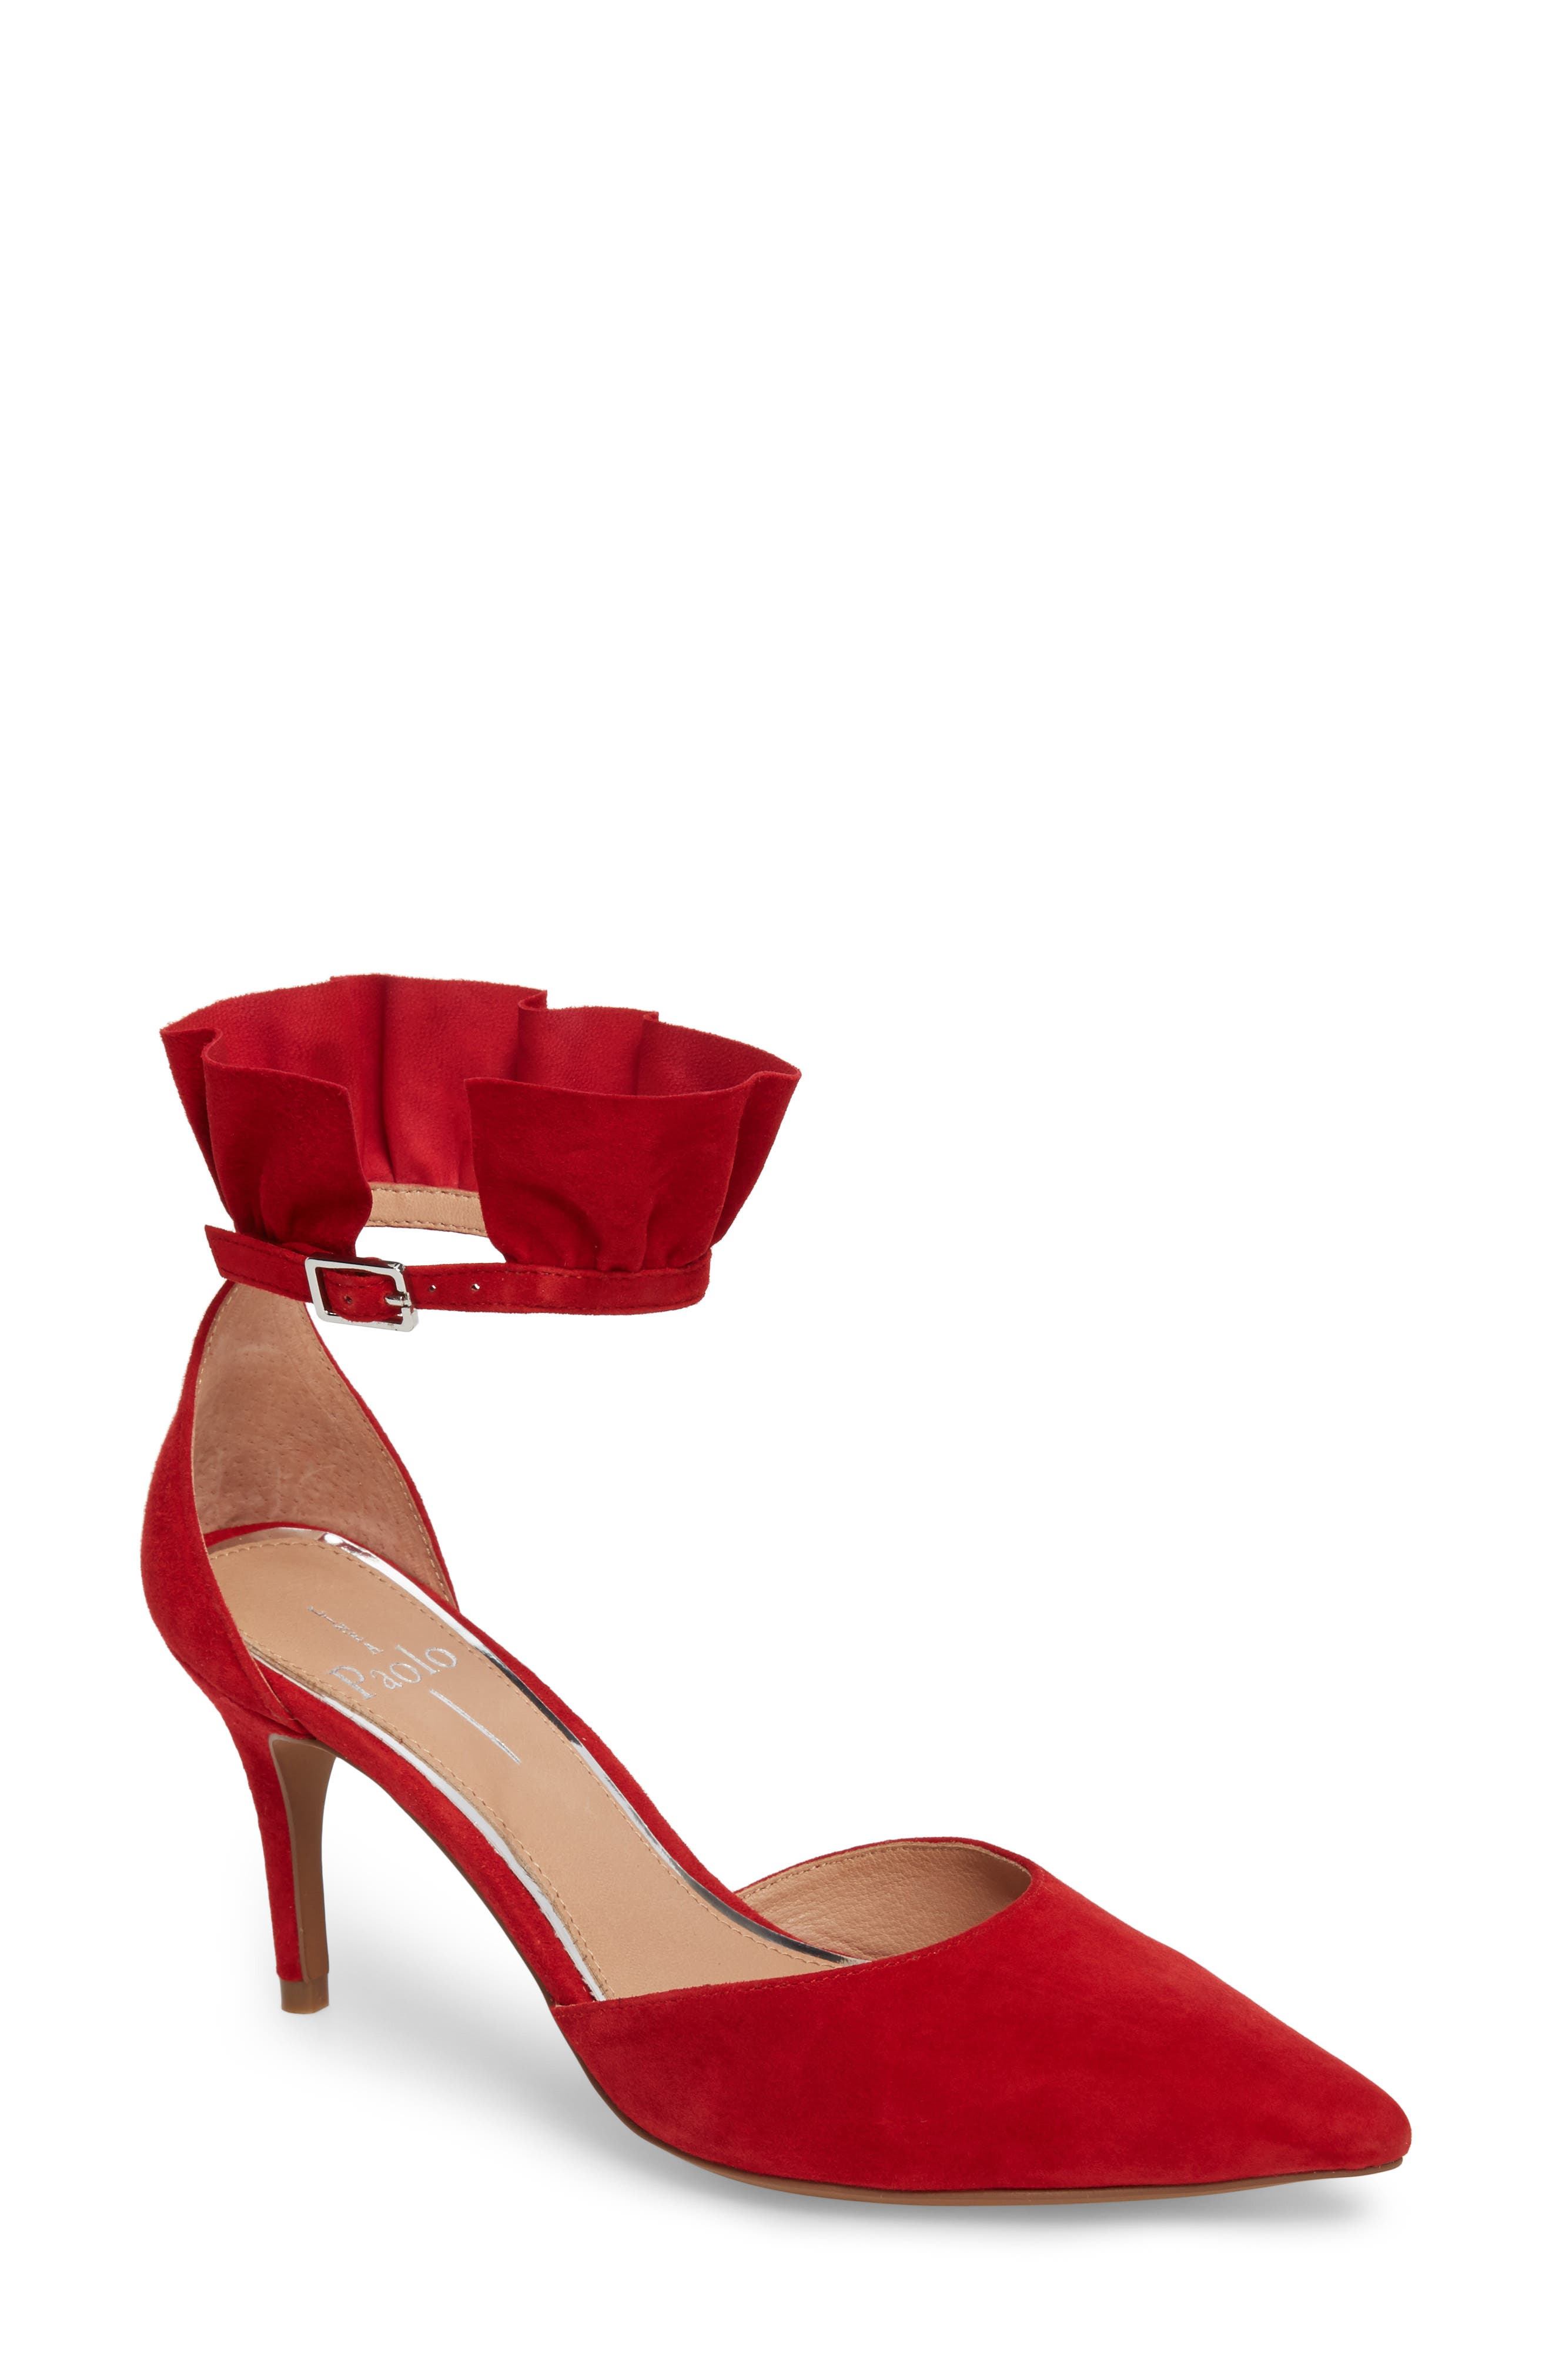 Pammy Ruffled Pointy Toe Pump,                             Main thumbnail 1, color,                             Red Suede